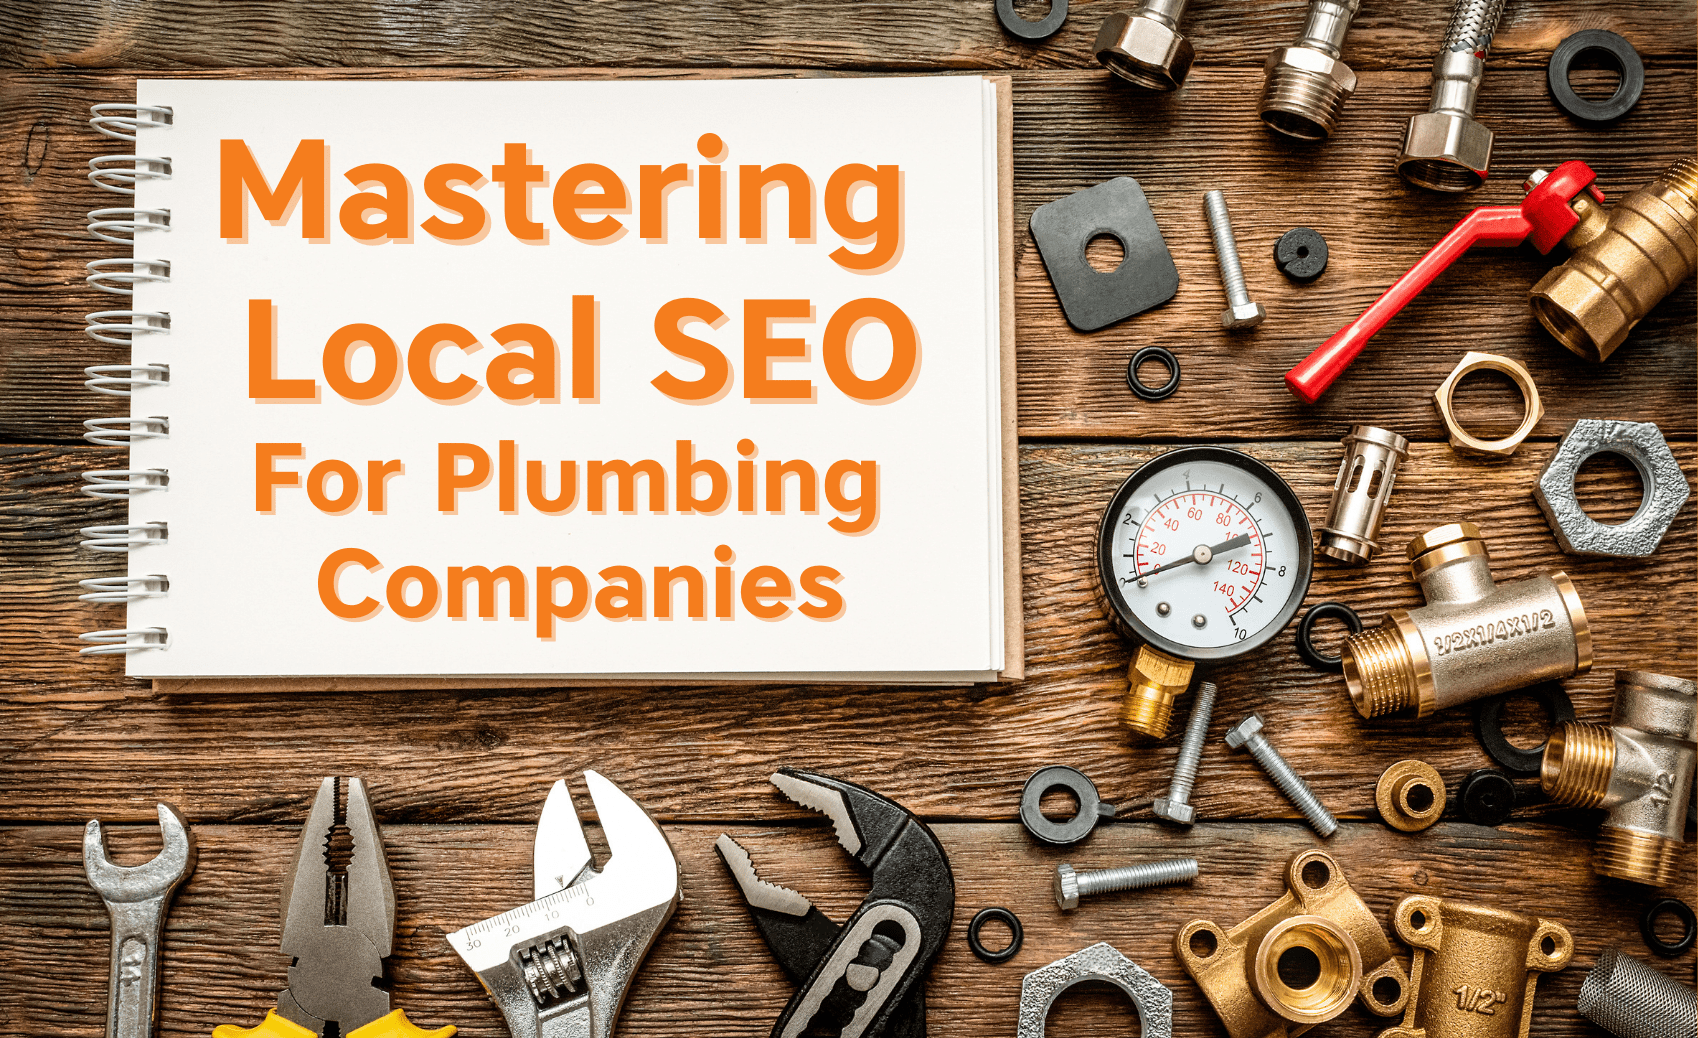 Mastering Local SEO for Plumbing Companies